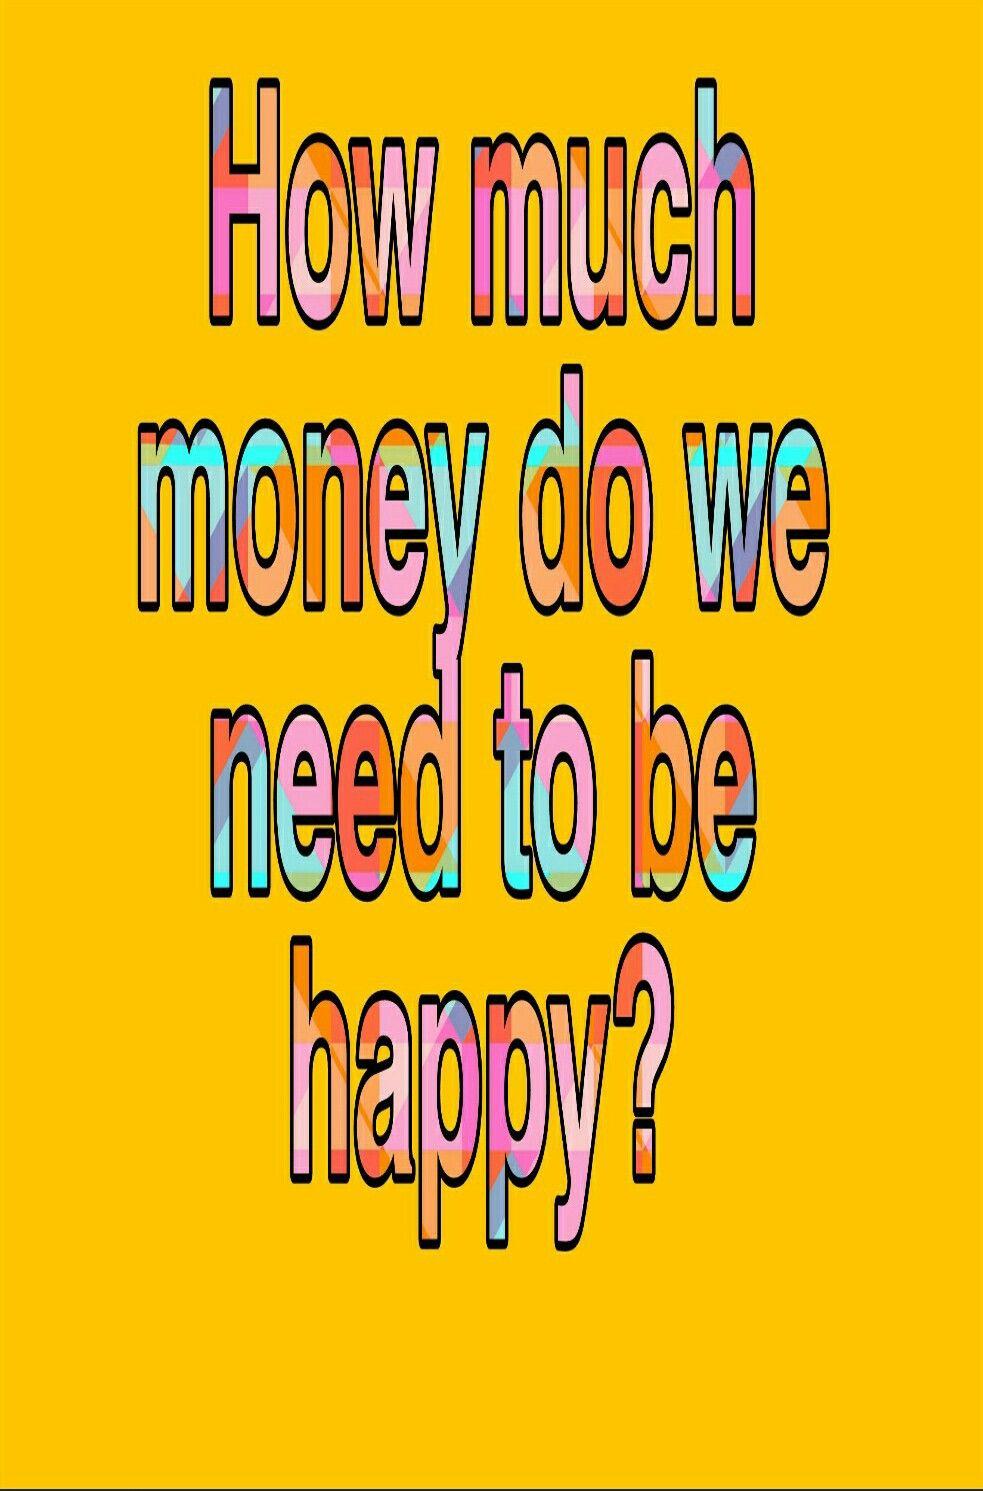 Happiness how much money do we need to be happy in 2020